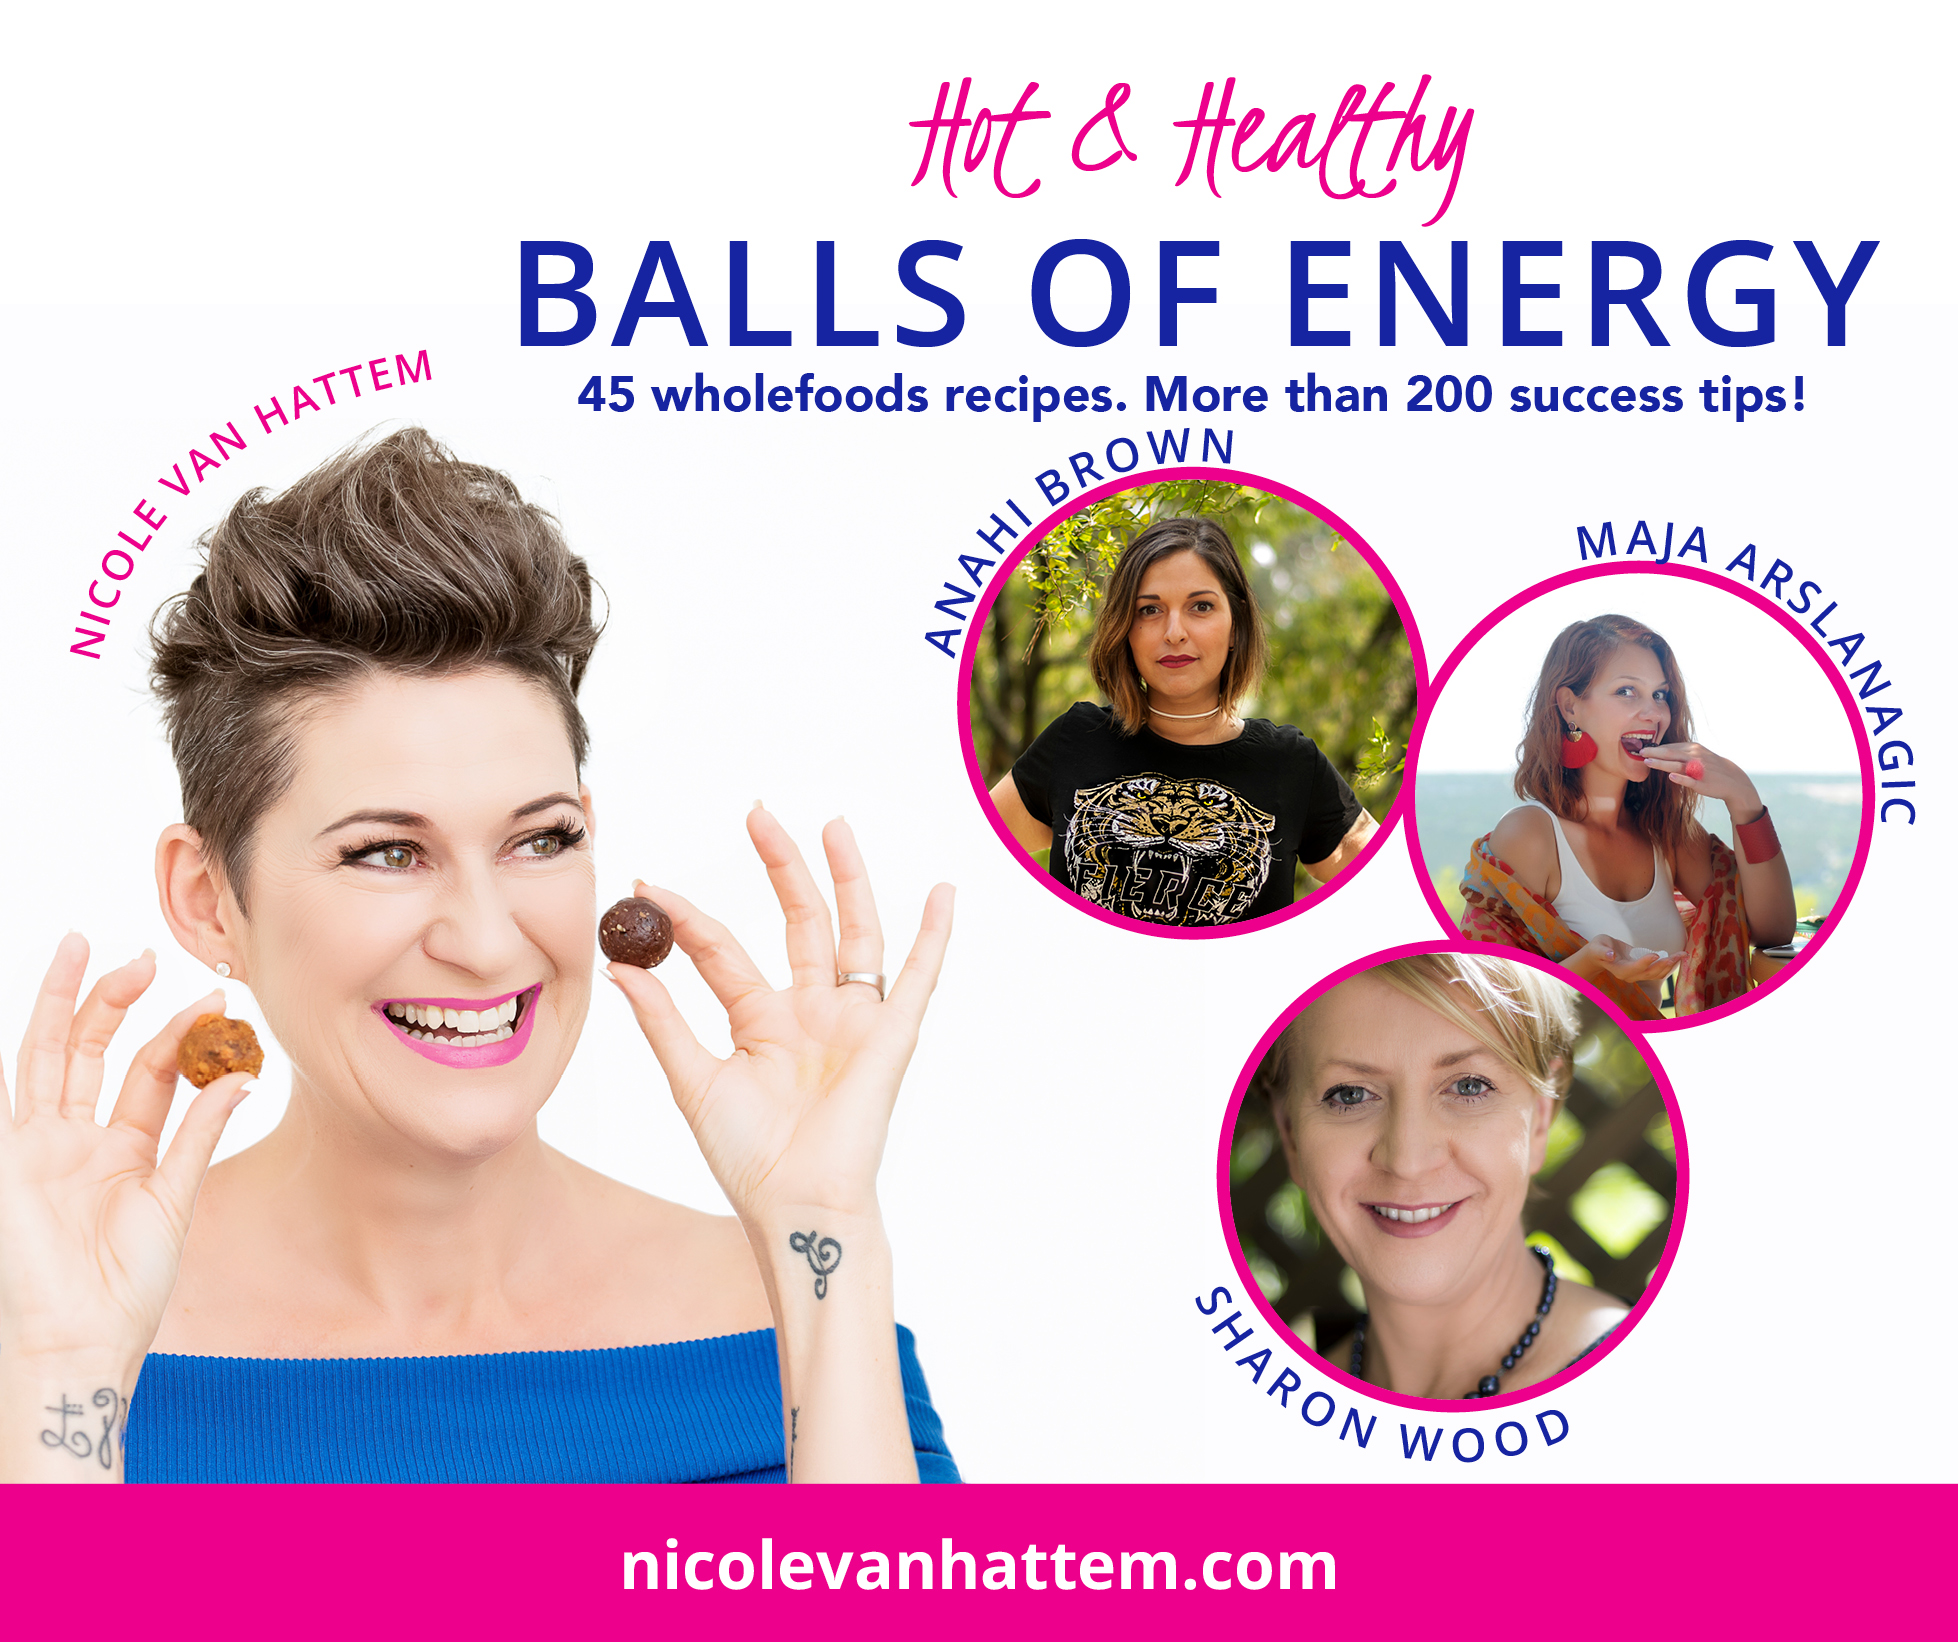 Hot and Healthy - Balls of Energy